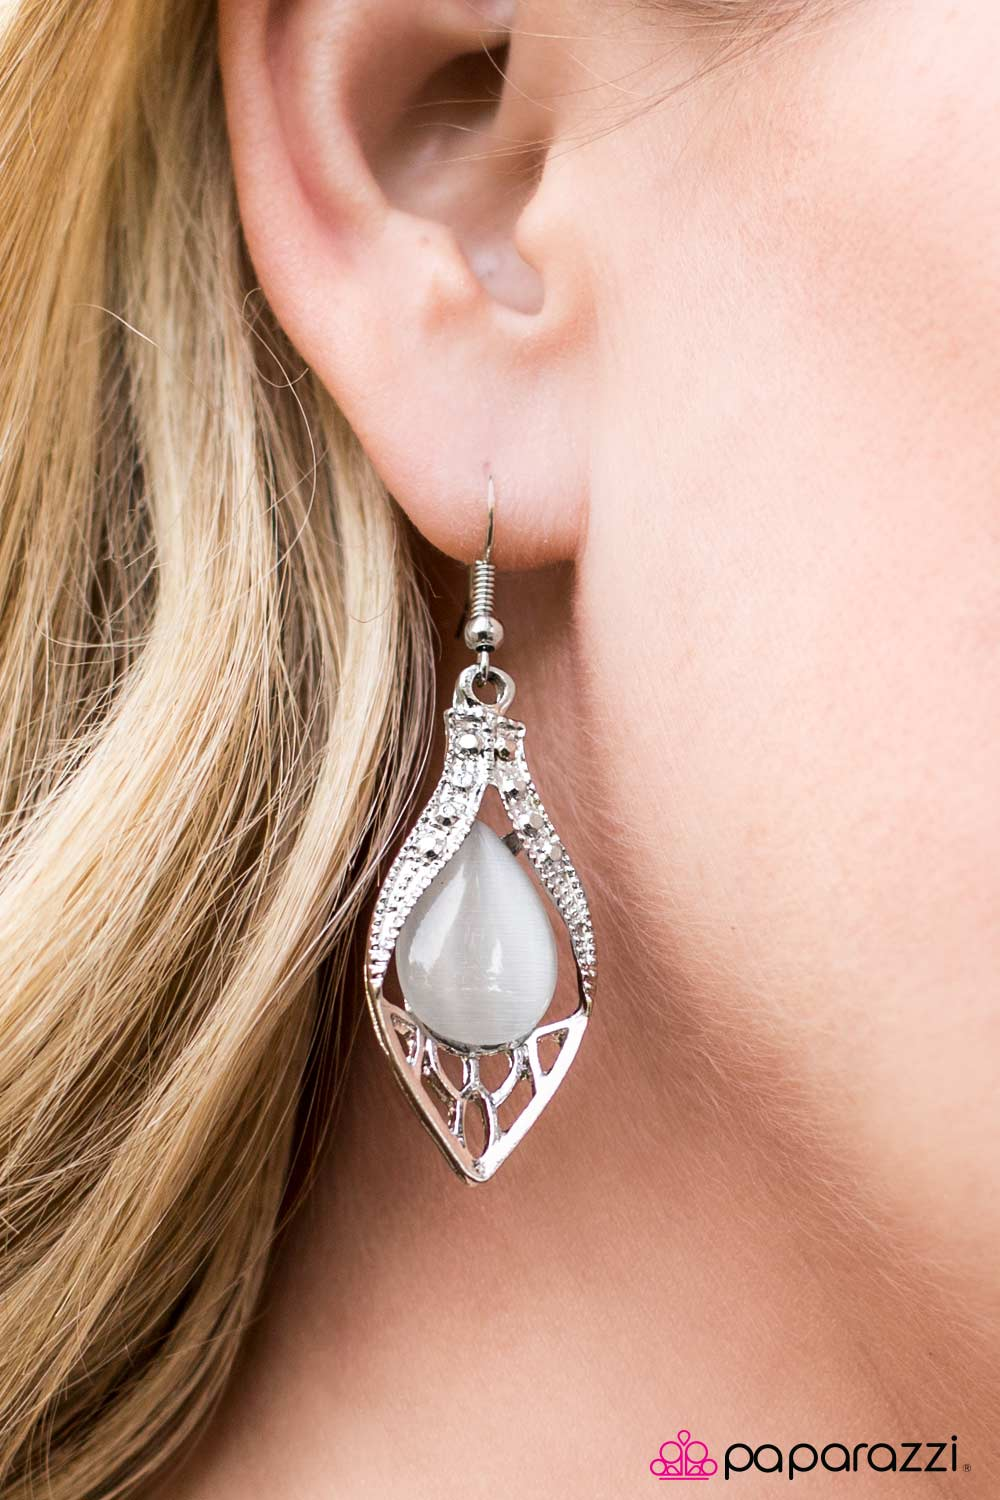 Loyal Royal - White - Paparazzi earrings